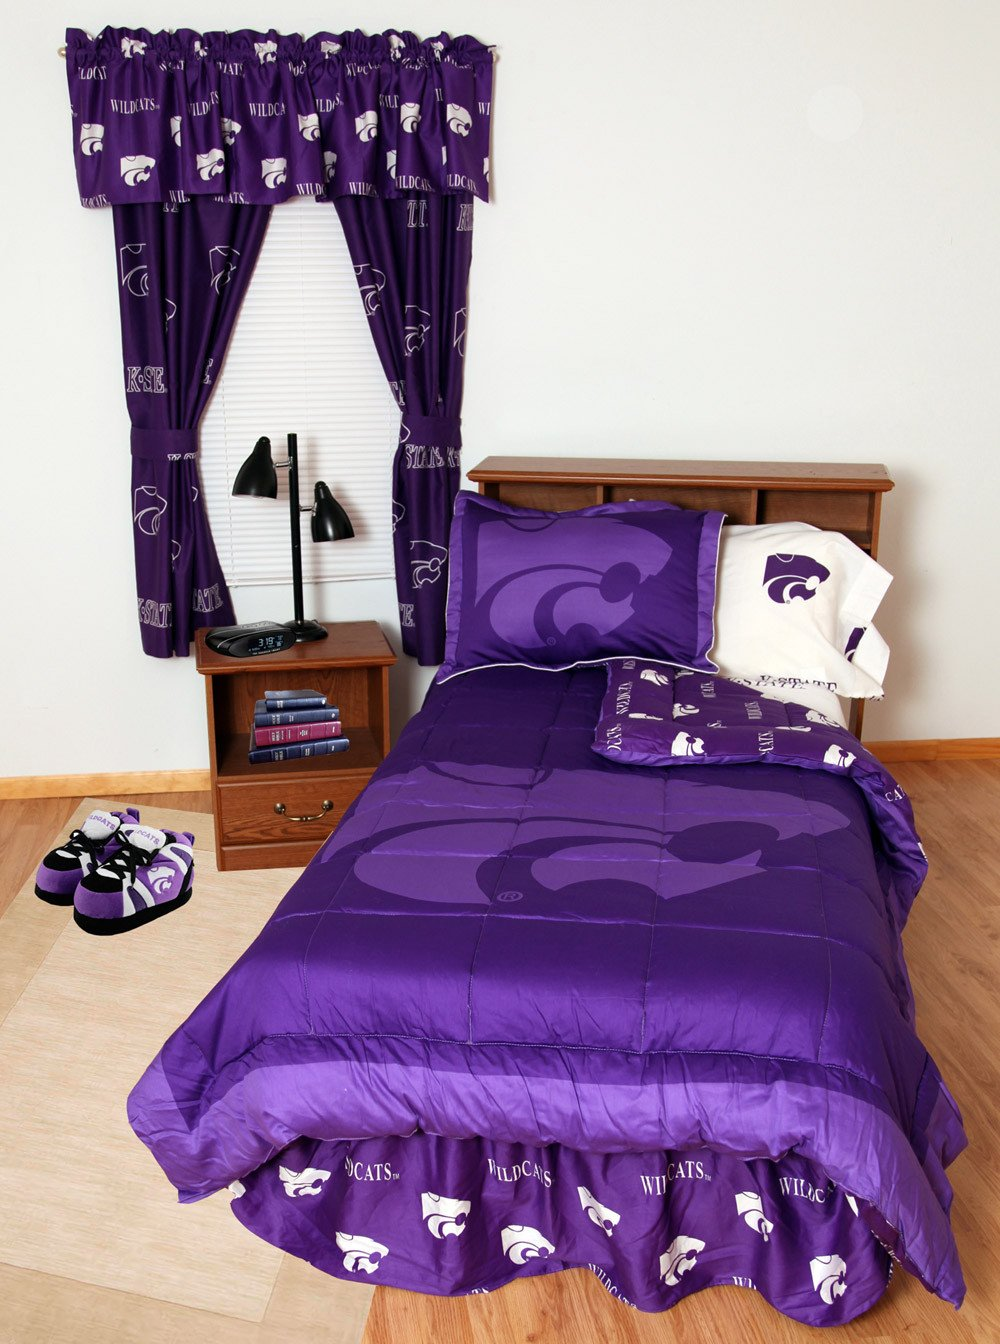 Kansas State Bed in a Bag Full - With White Sheets - KSUBBFLW by College Covers from College Covers